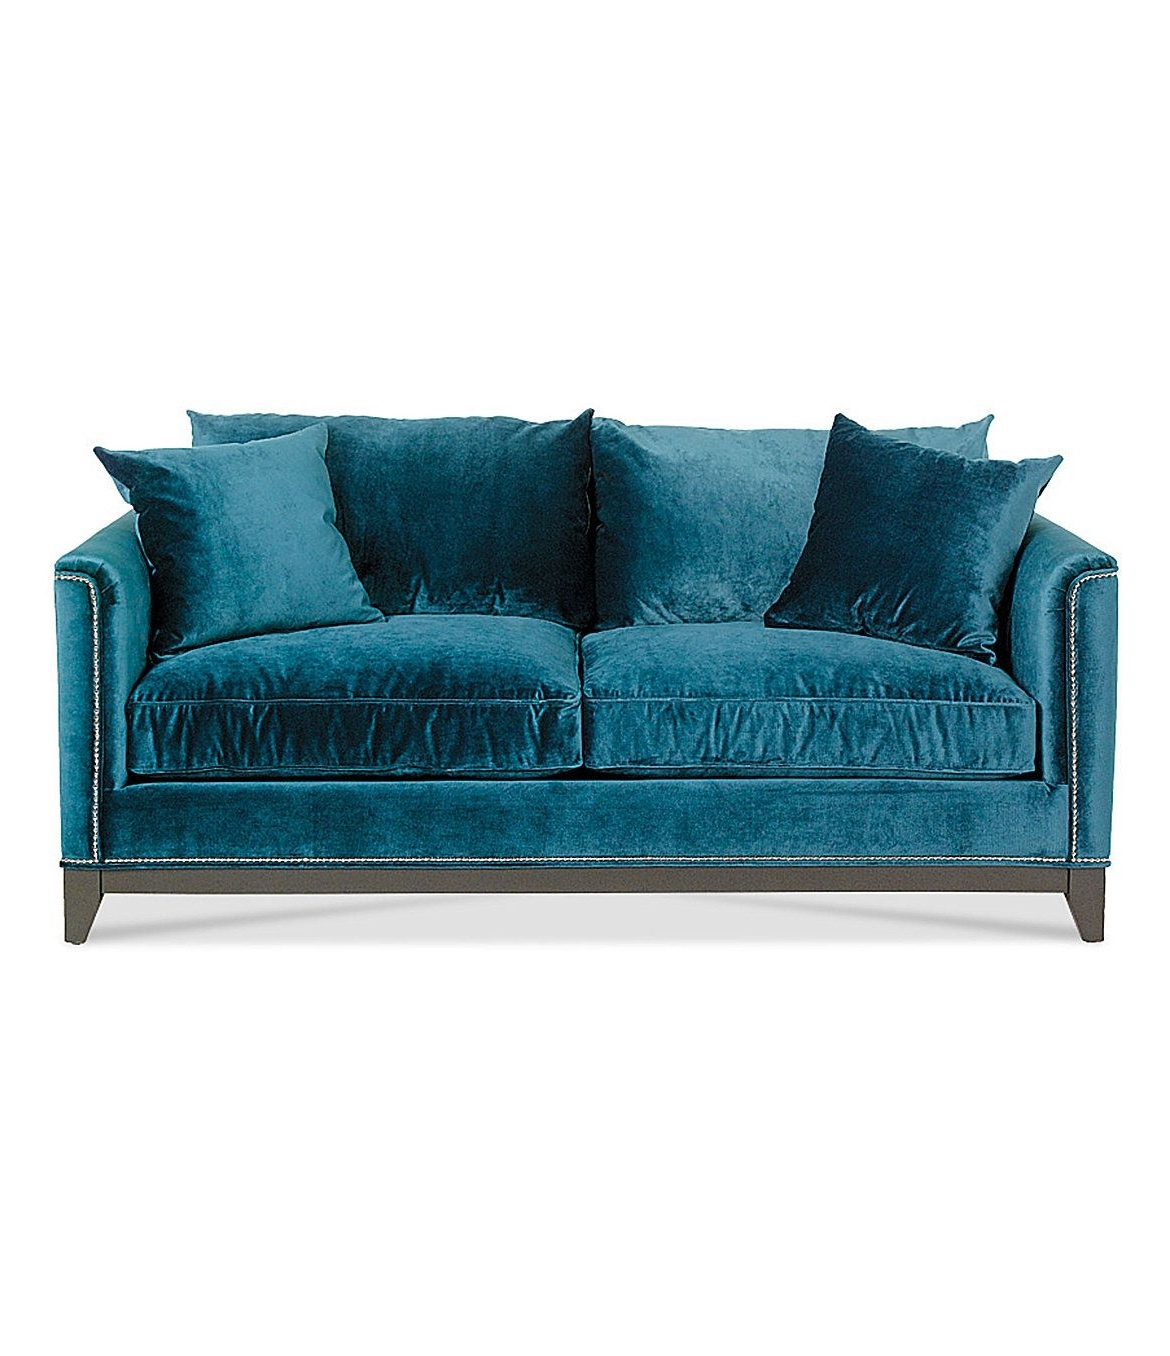 """Jonathan Louis """"mystere"""" Sofa From Dillard's $699! This Just Could With Regard To Trendy Dillards Sectional Sofas (View 11 of 20)"""